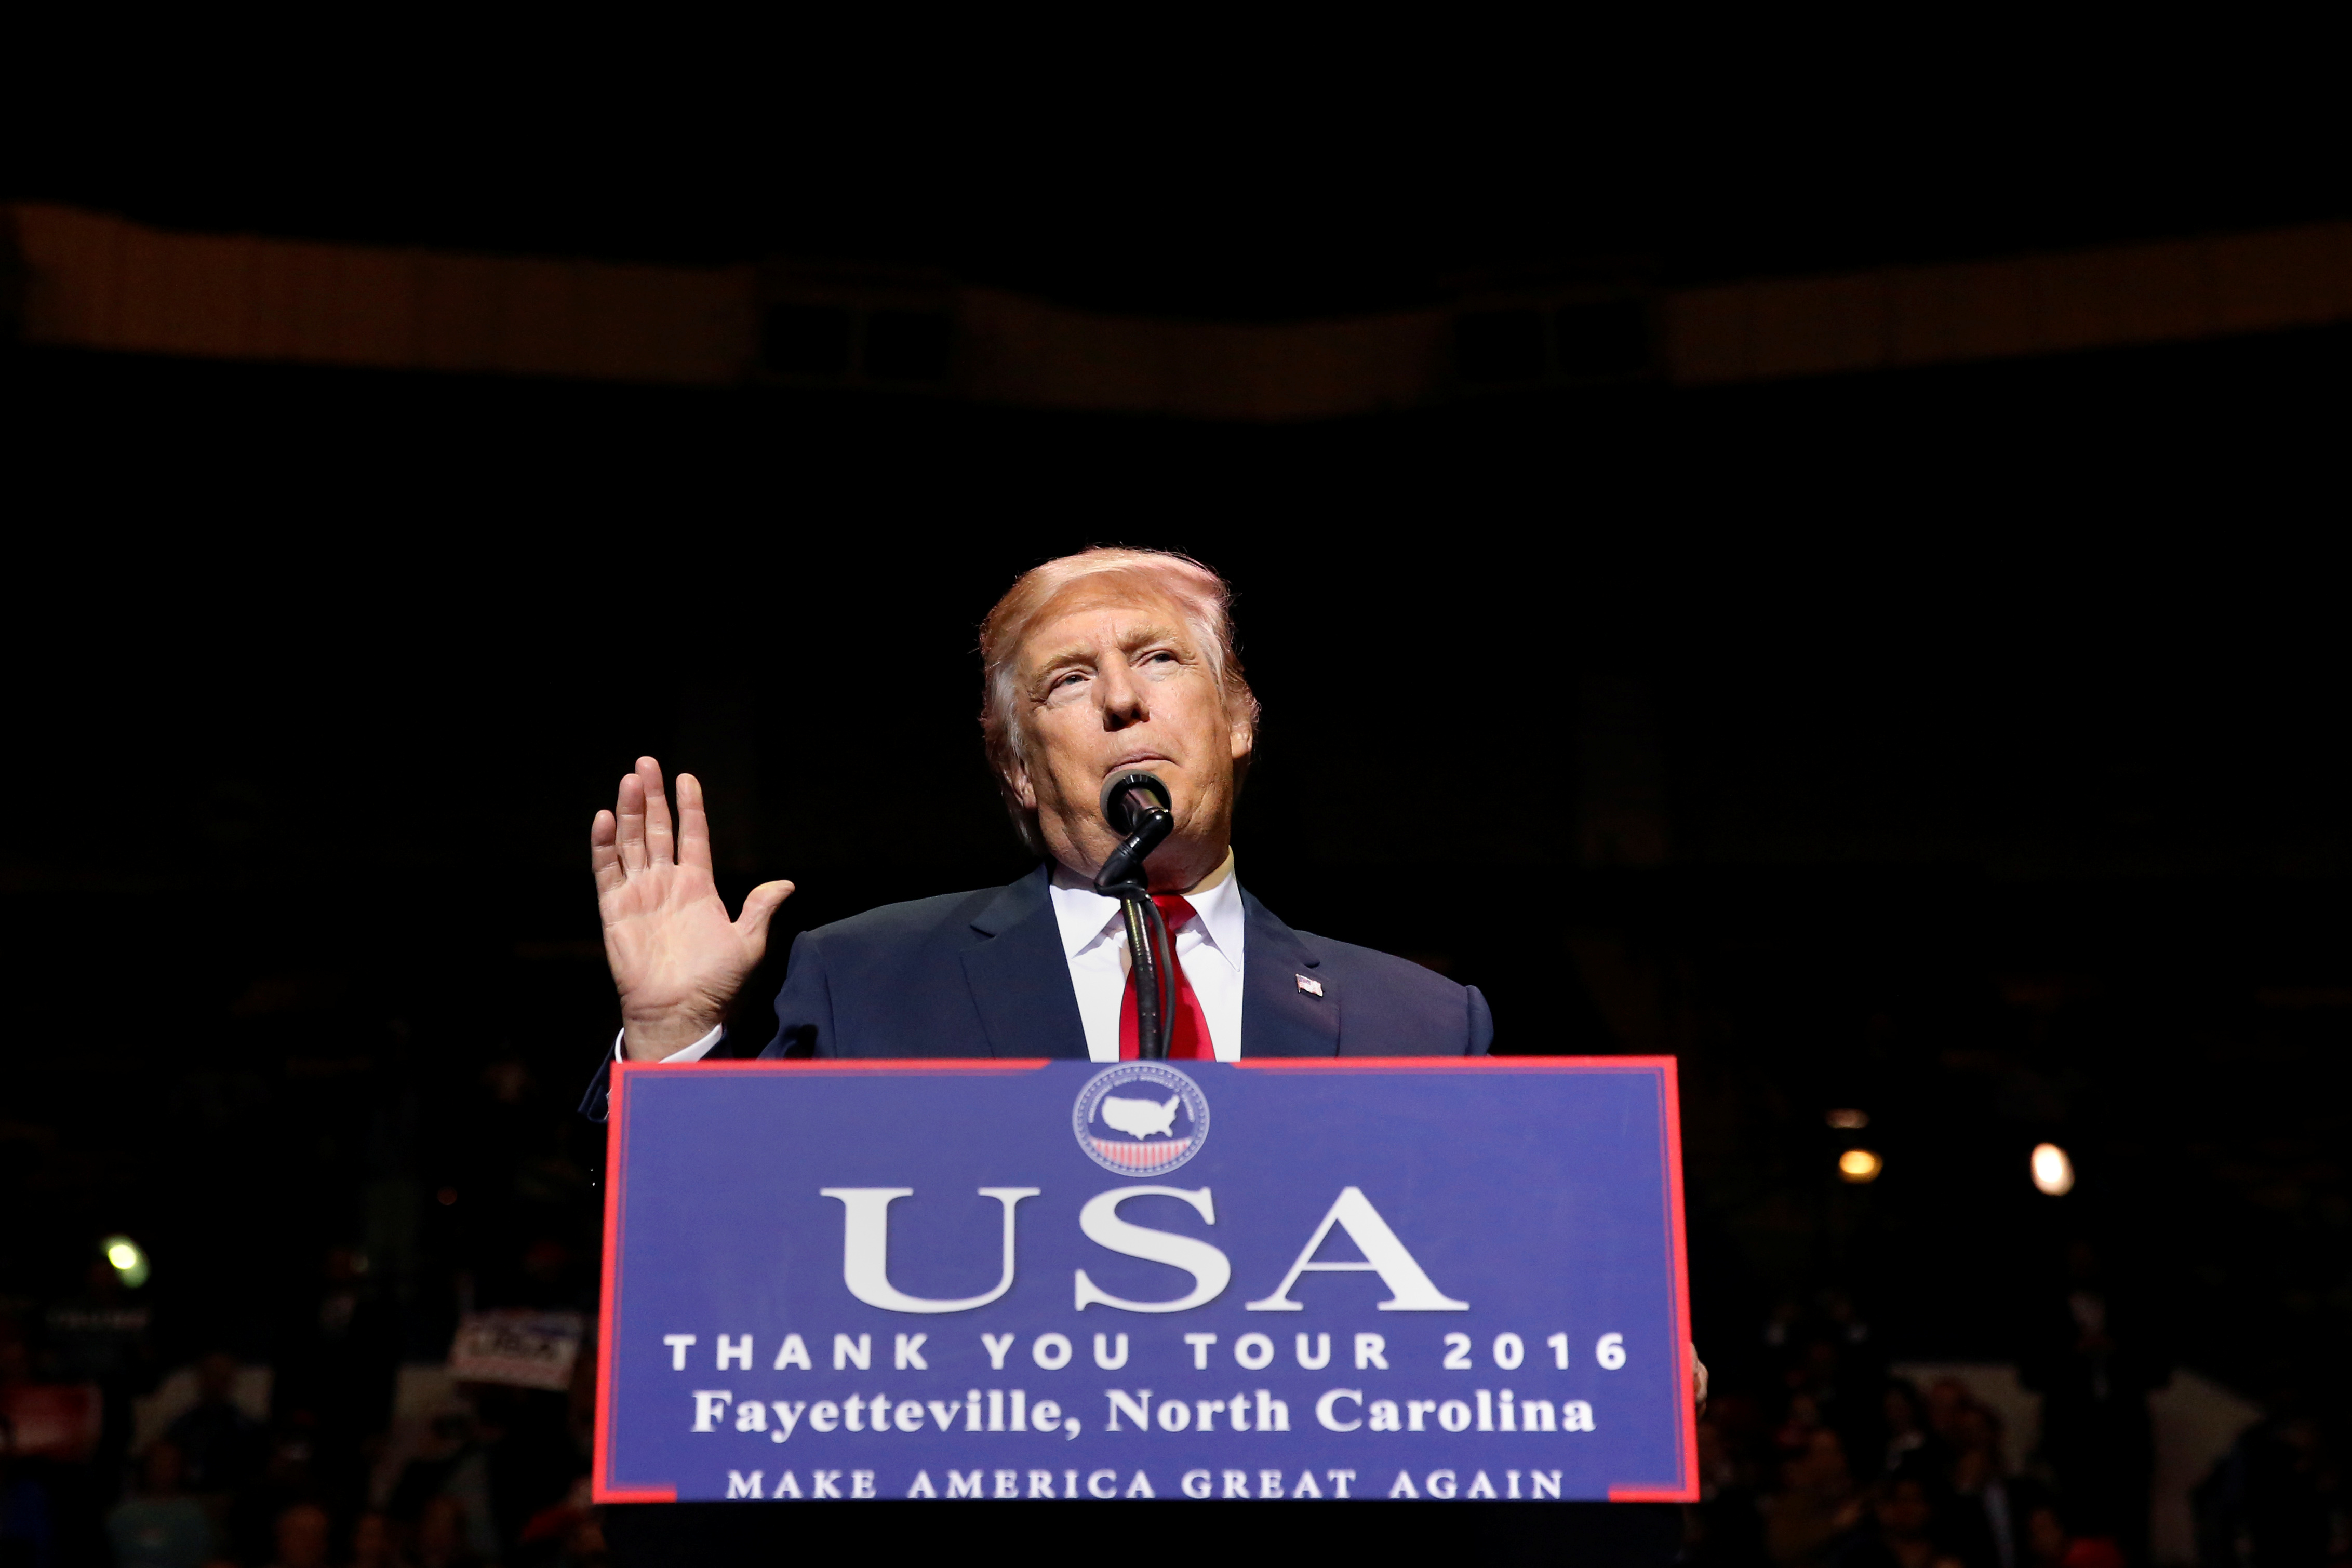 U.S. President-elect Donald Trump speaks at a USA Thank You Tour event at Crown Coliseum in Fayetteville, North Carolina, U.S., Dec. 6, 2016.